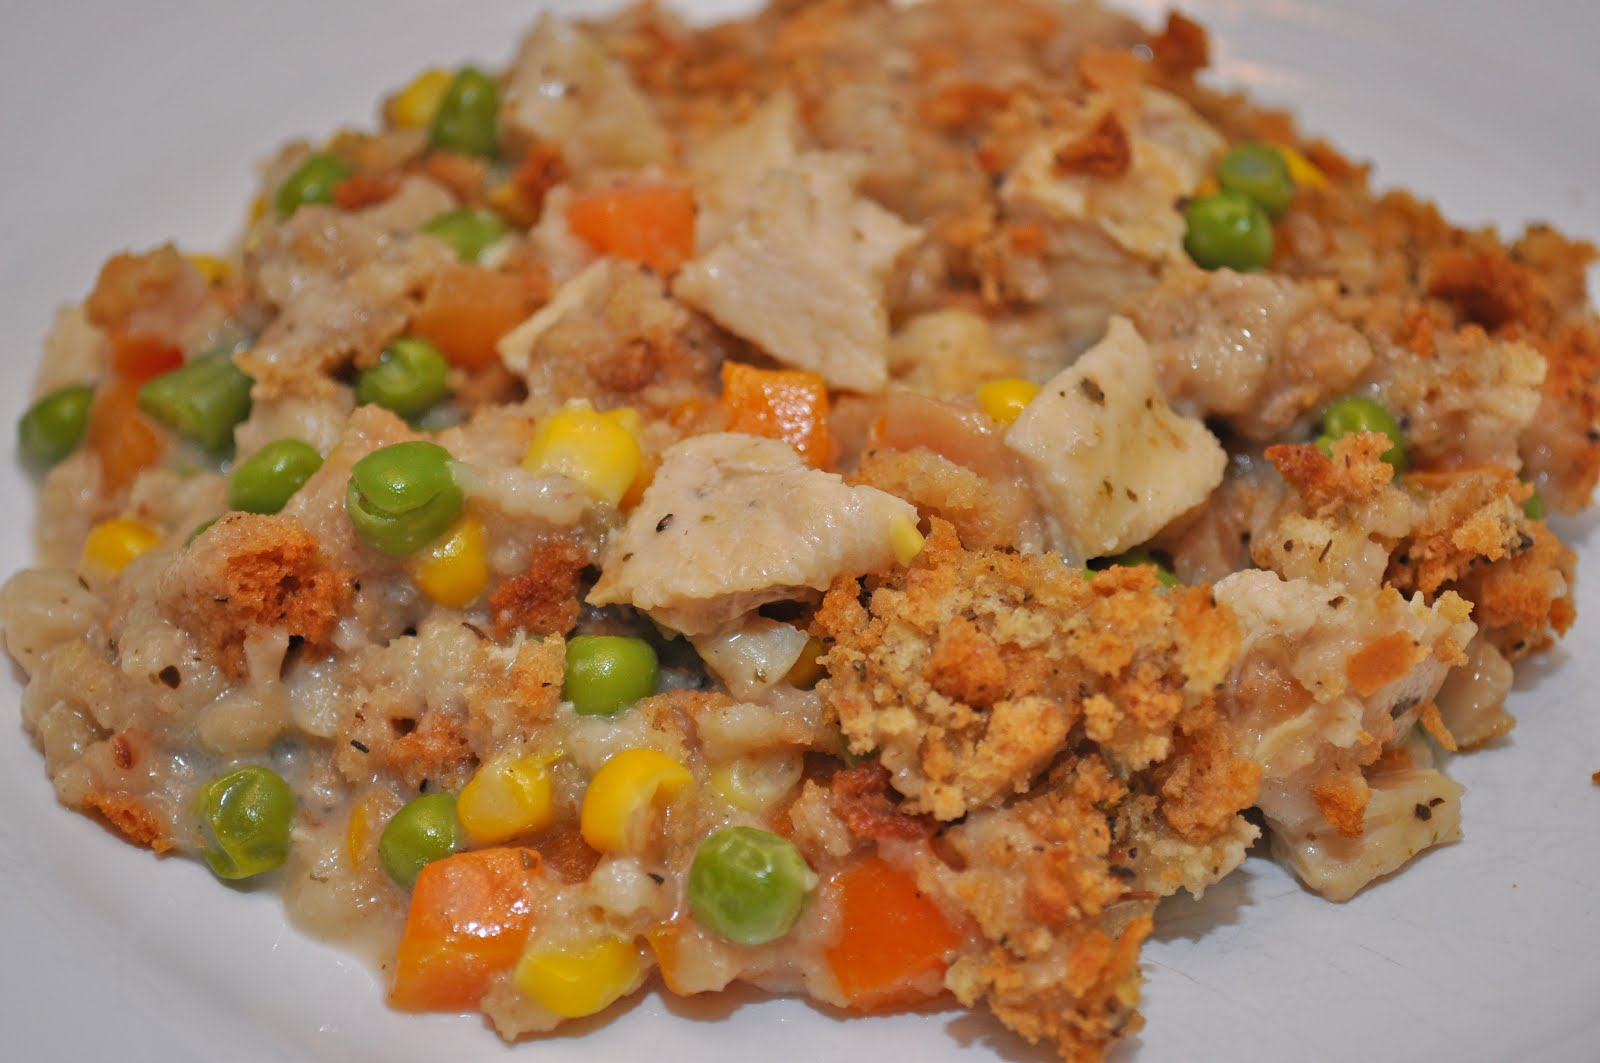 Tummy Temptations: Country Chicken Casserole